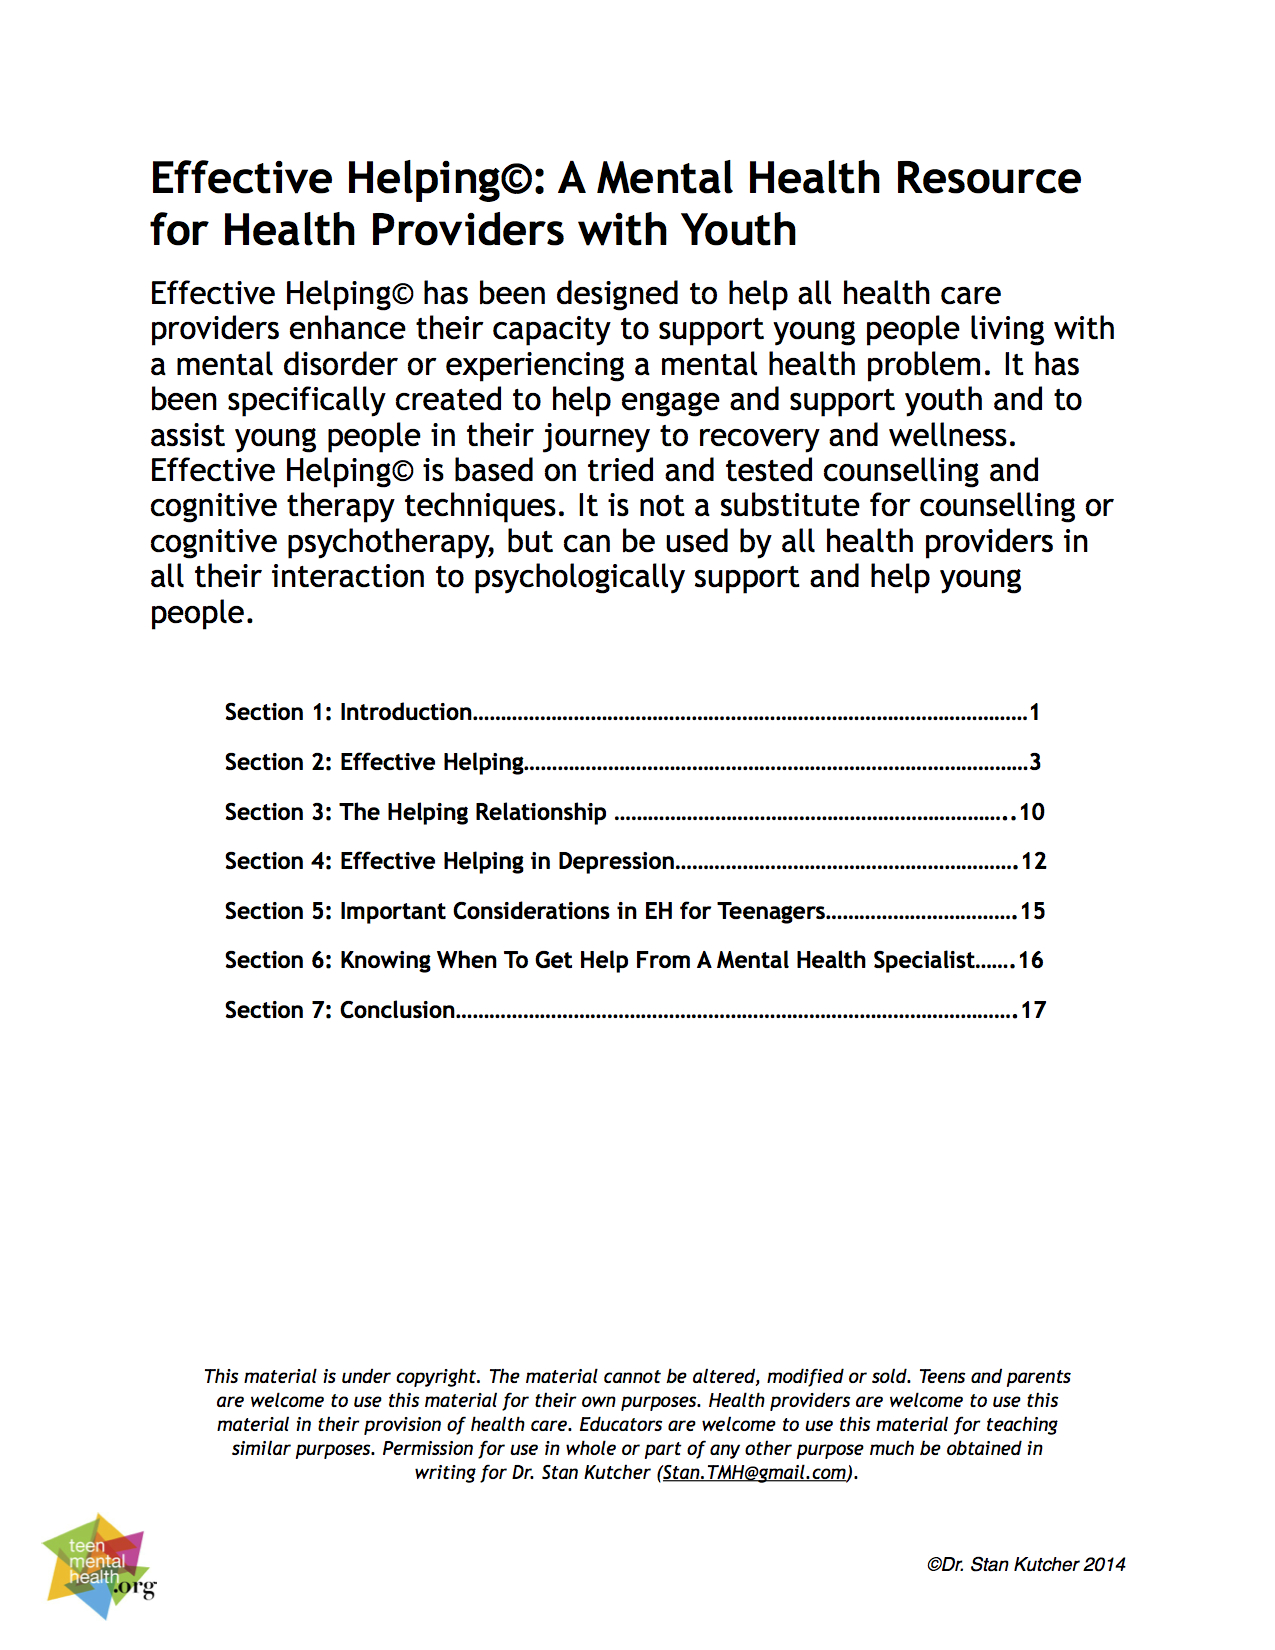 Mental Health Effective Helping For Health Care Providers Teen